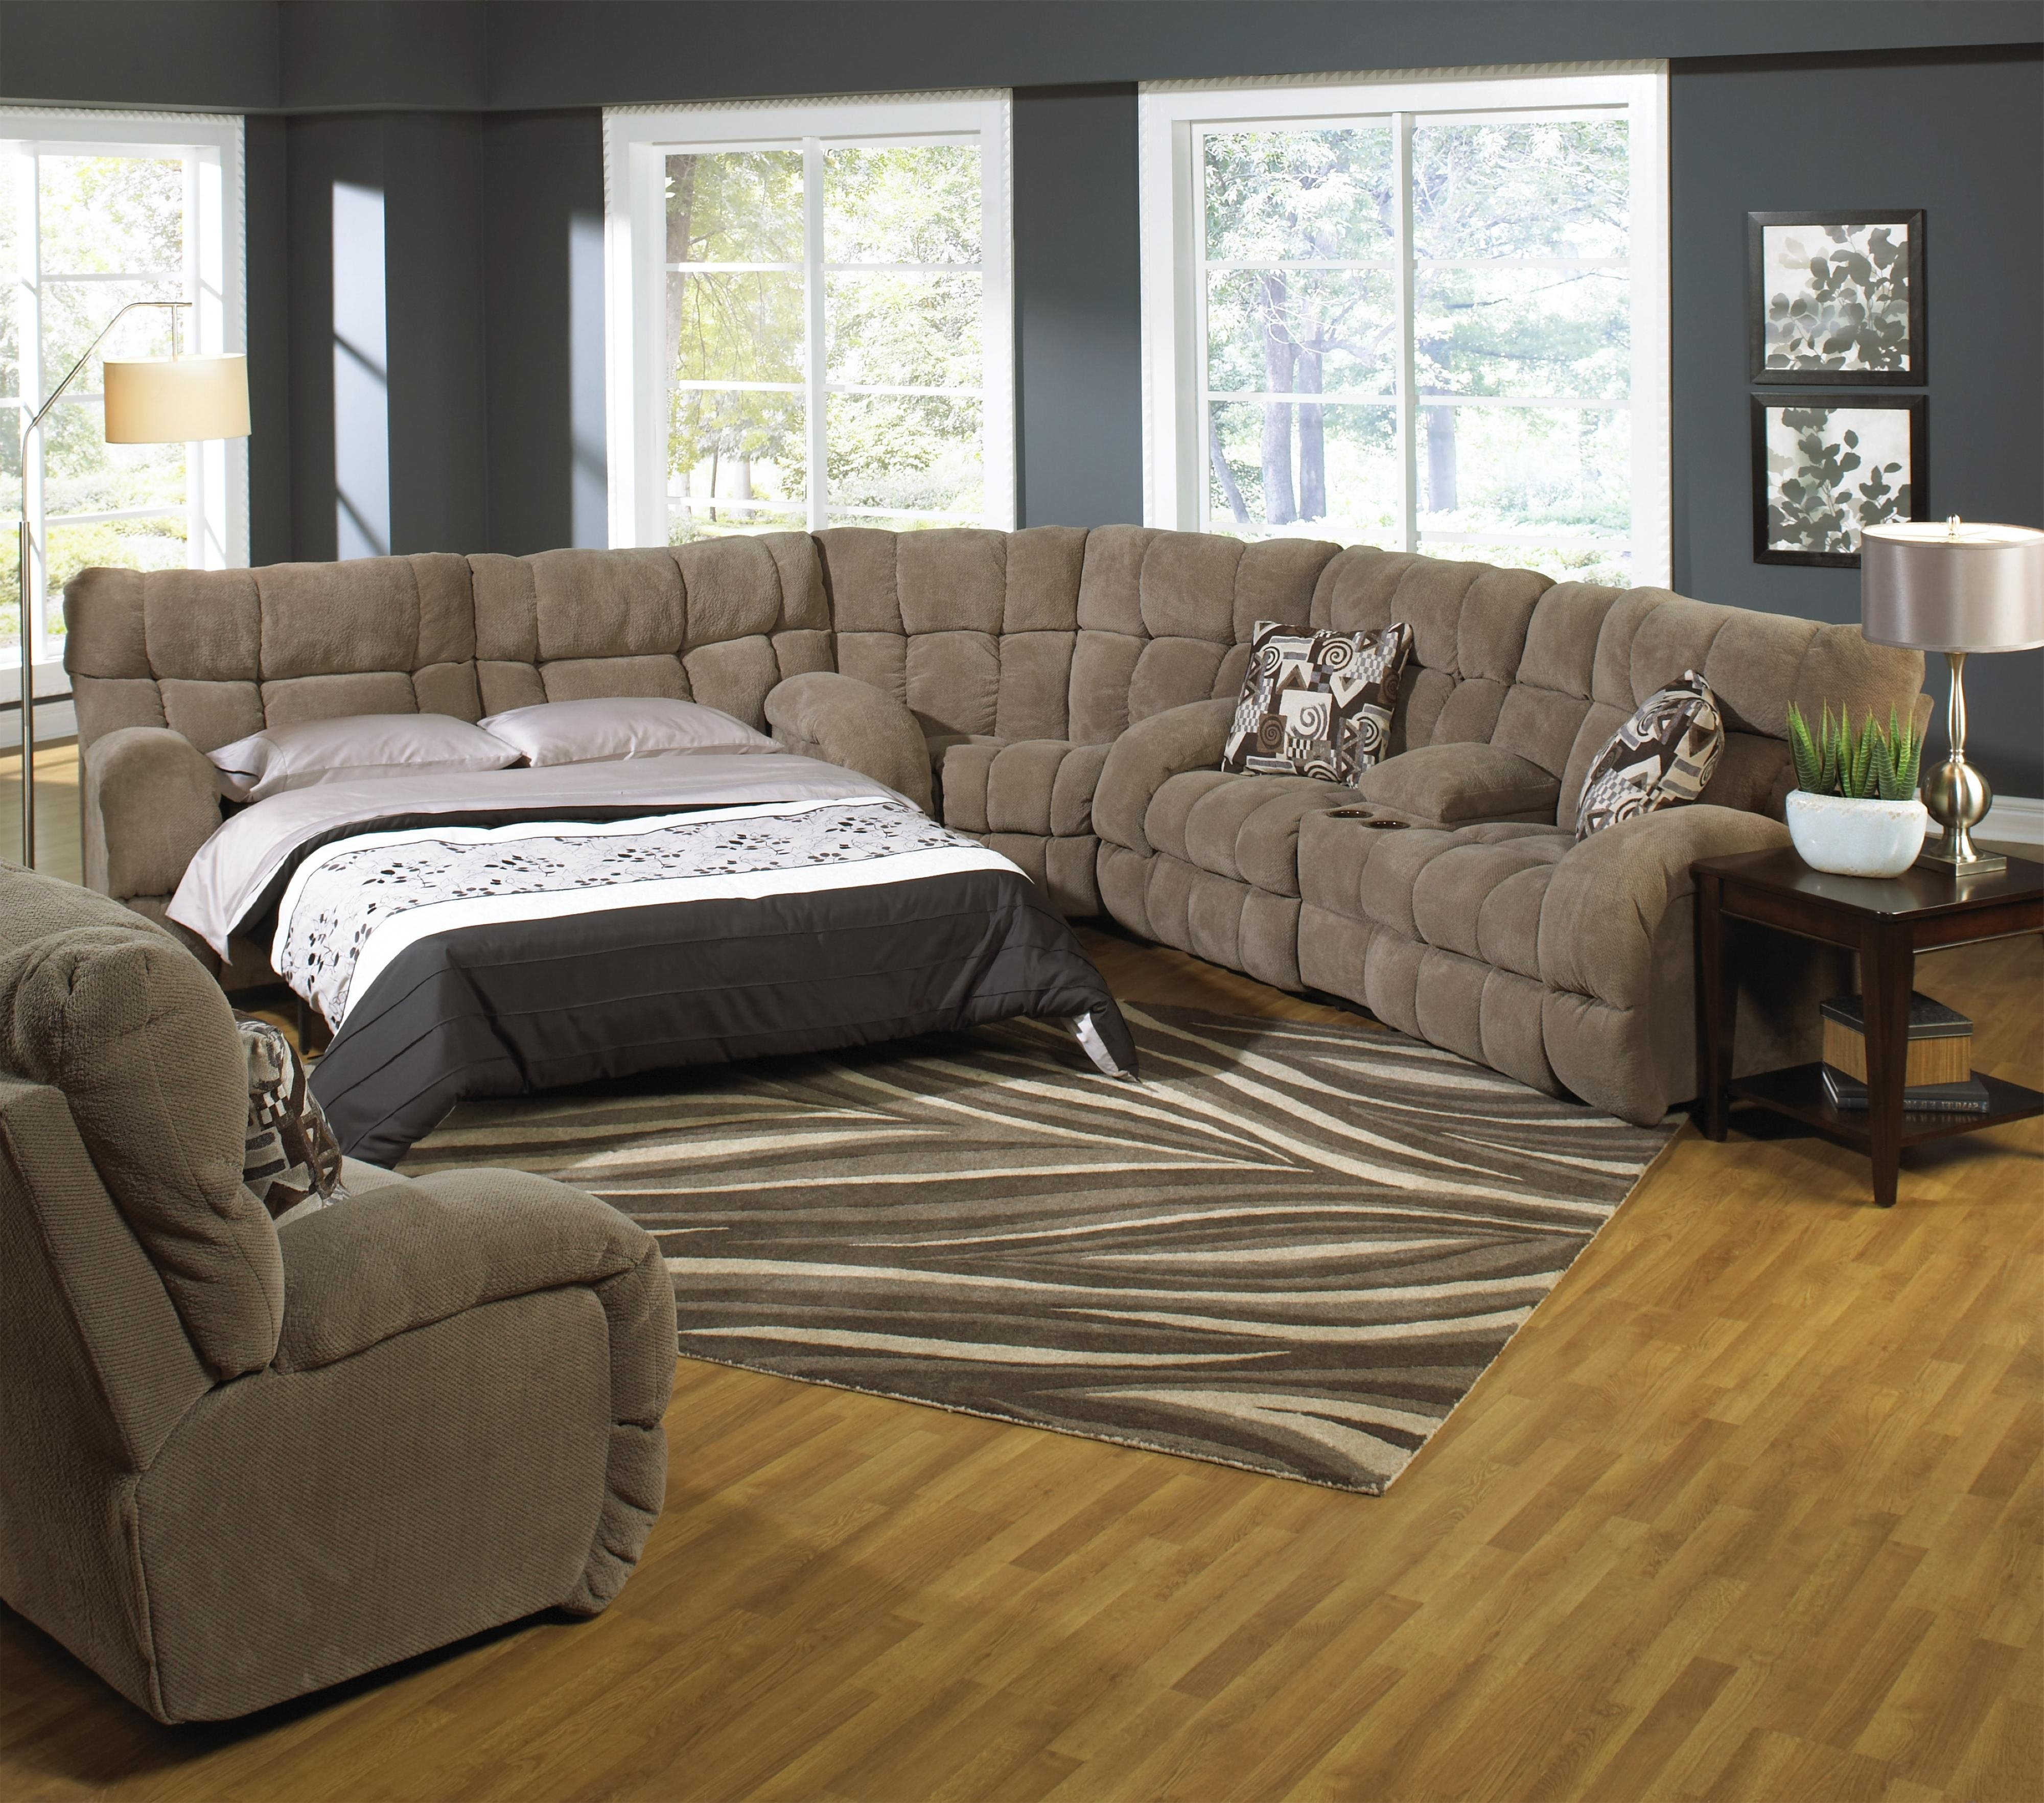 Current L Shaped Sectional Sleeper Sofas For L Shaped Sectional Sleeper Sofa – Tourdecarroll (View 15 of 15)